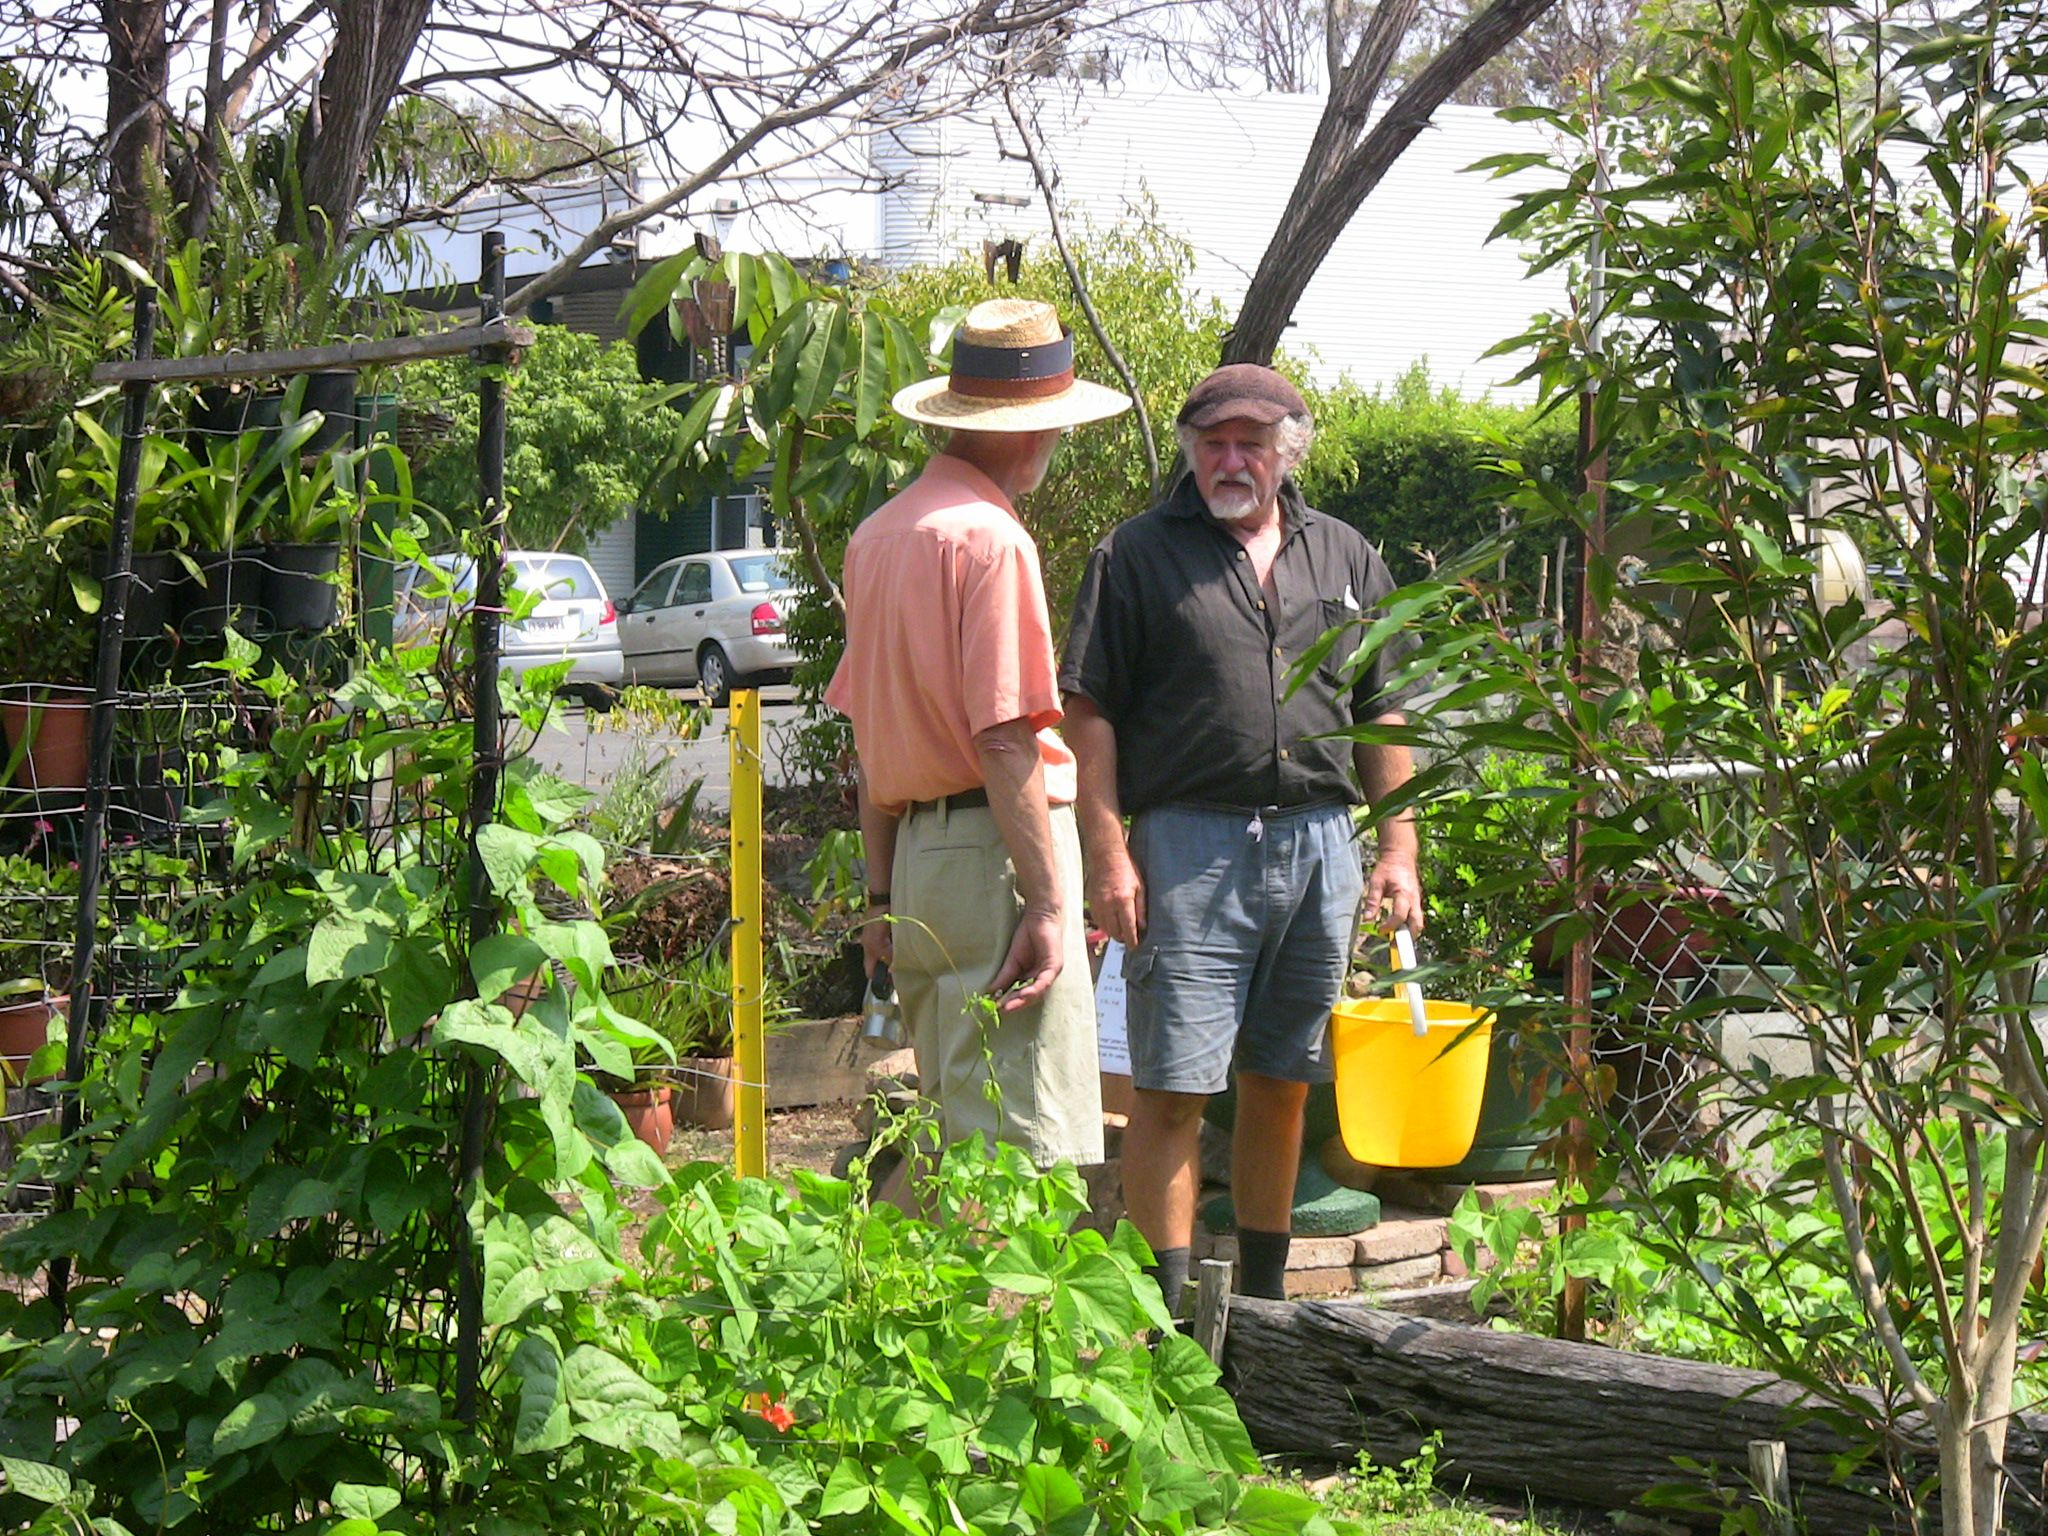 True grit tough love gardening in queensland s runcorn for Gardening tools brisbane